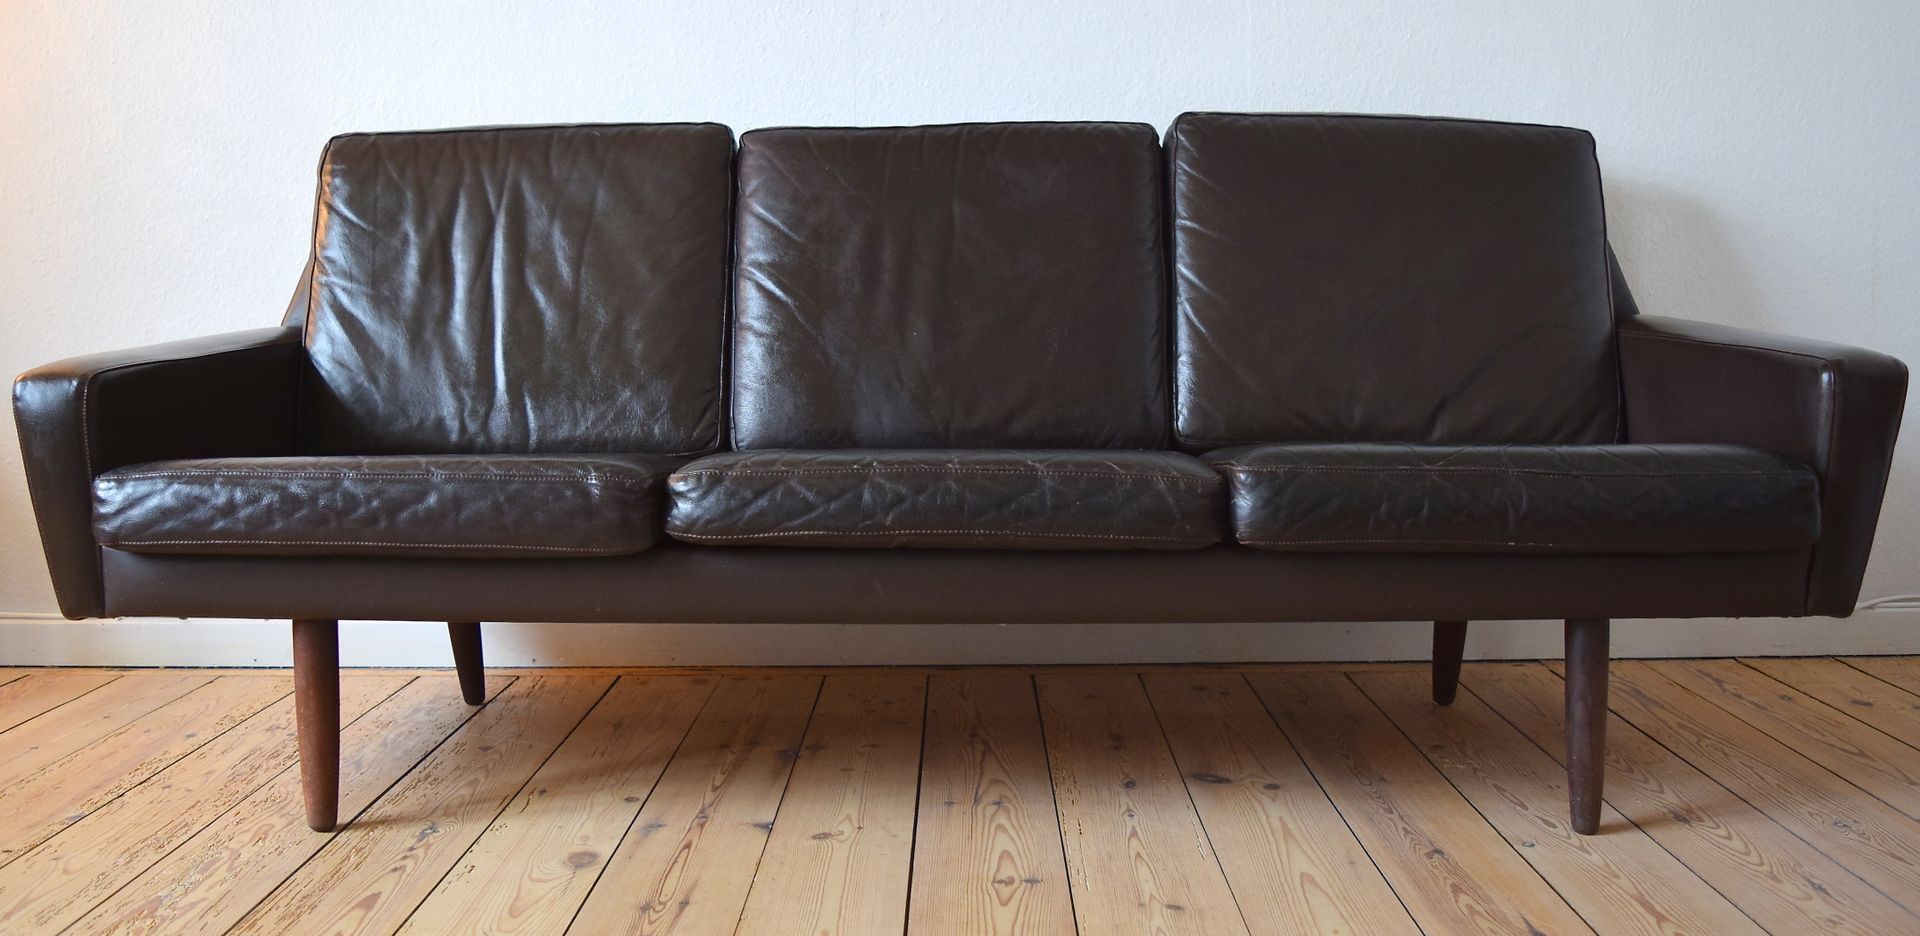 Danish Vintage Leather Sofa With Teak Legs 1960s For Sale At Pamono